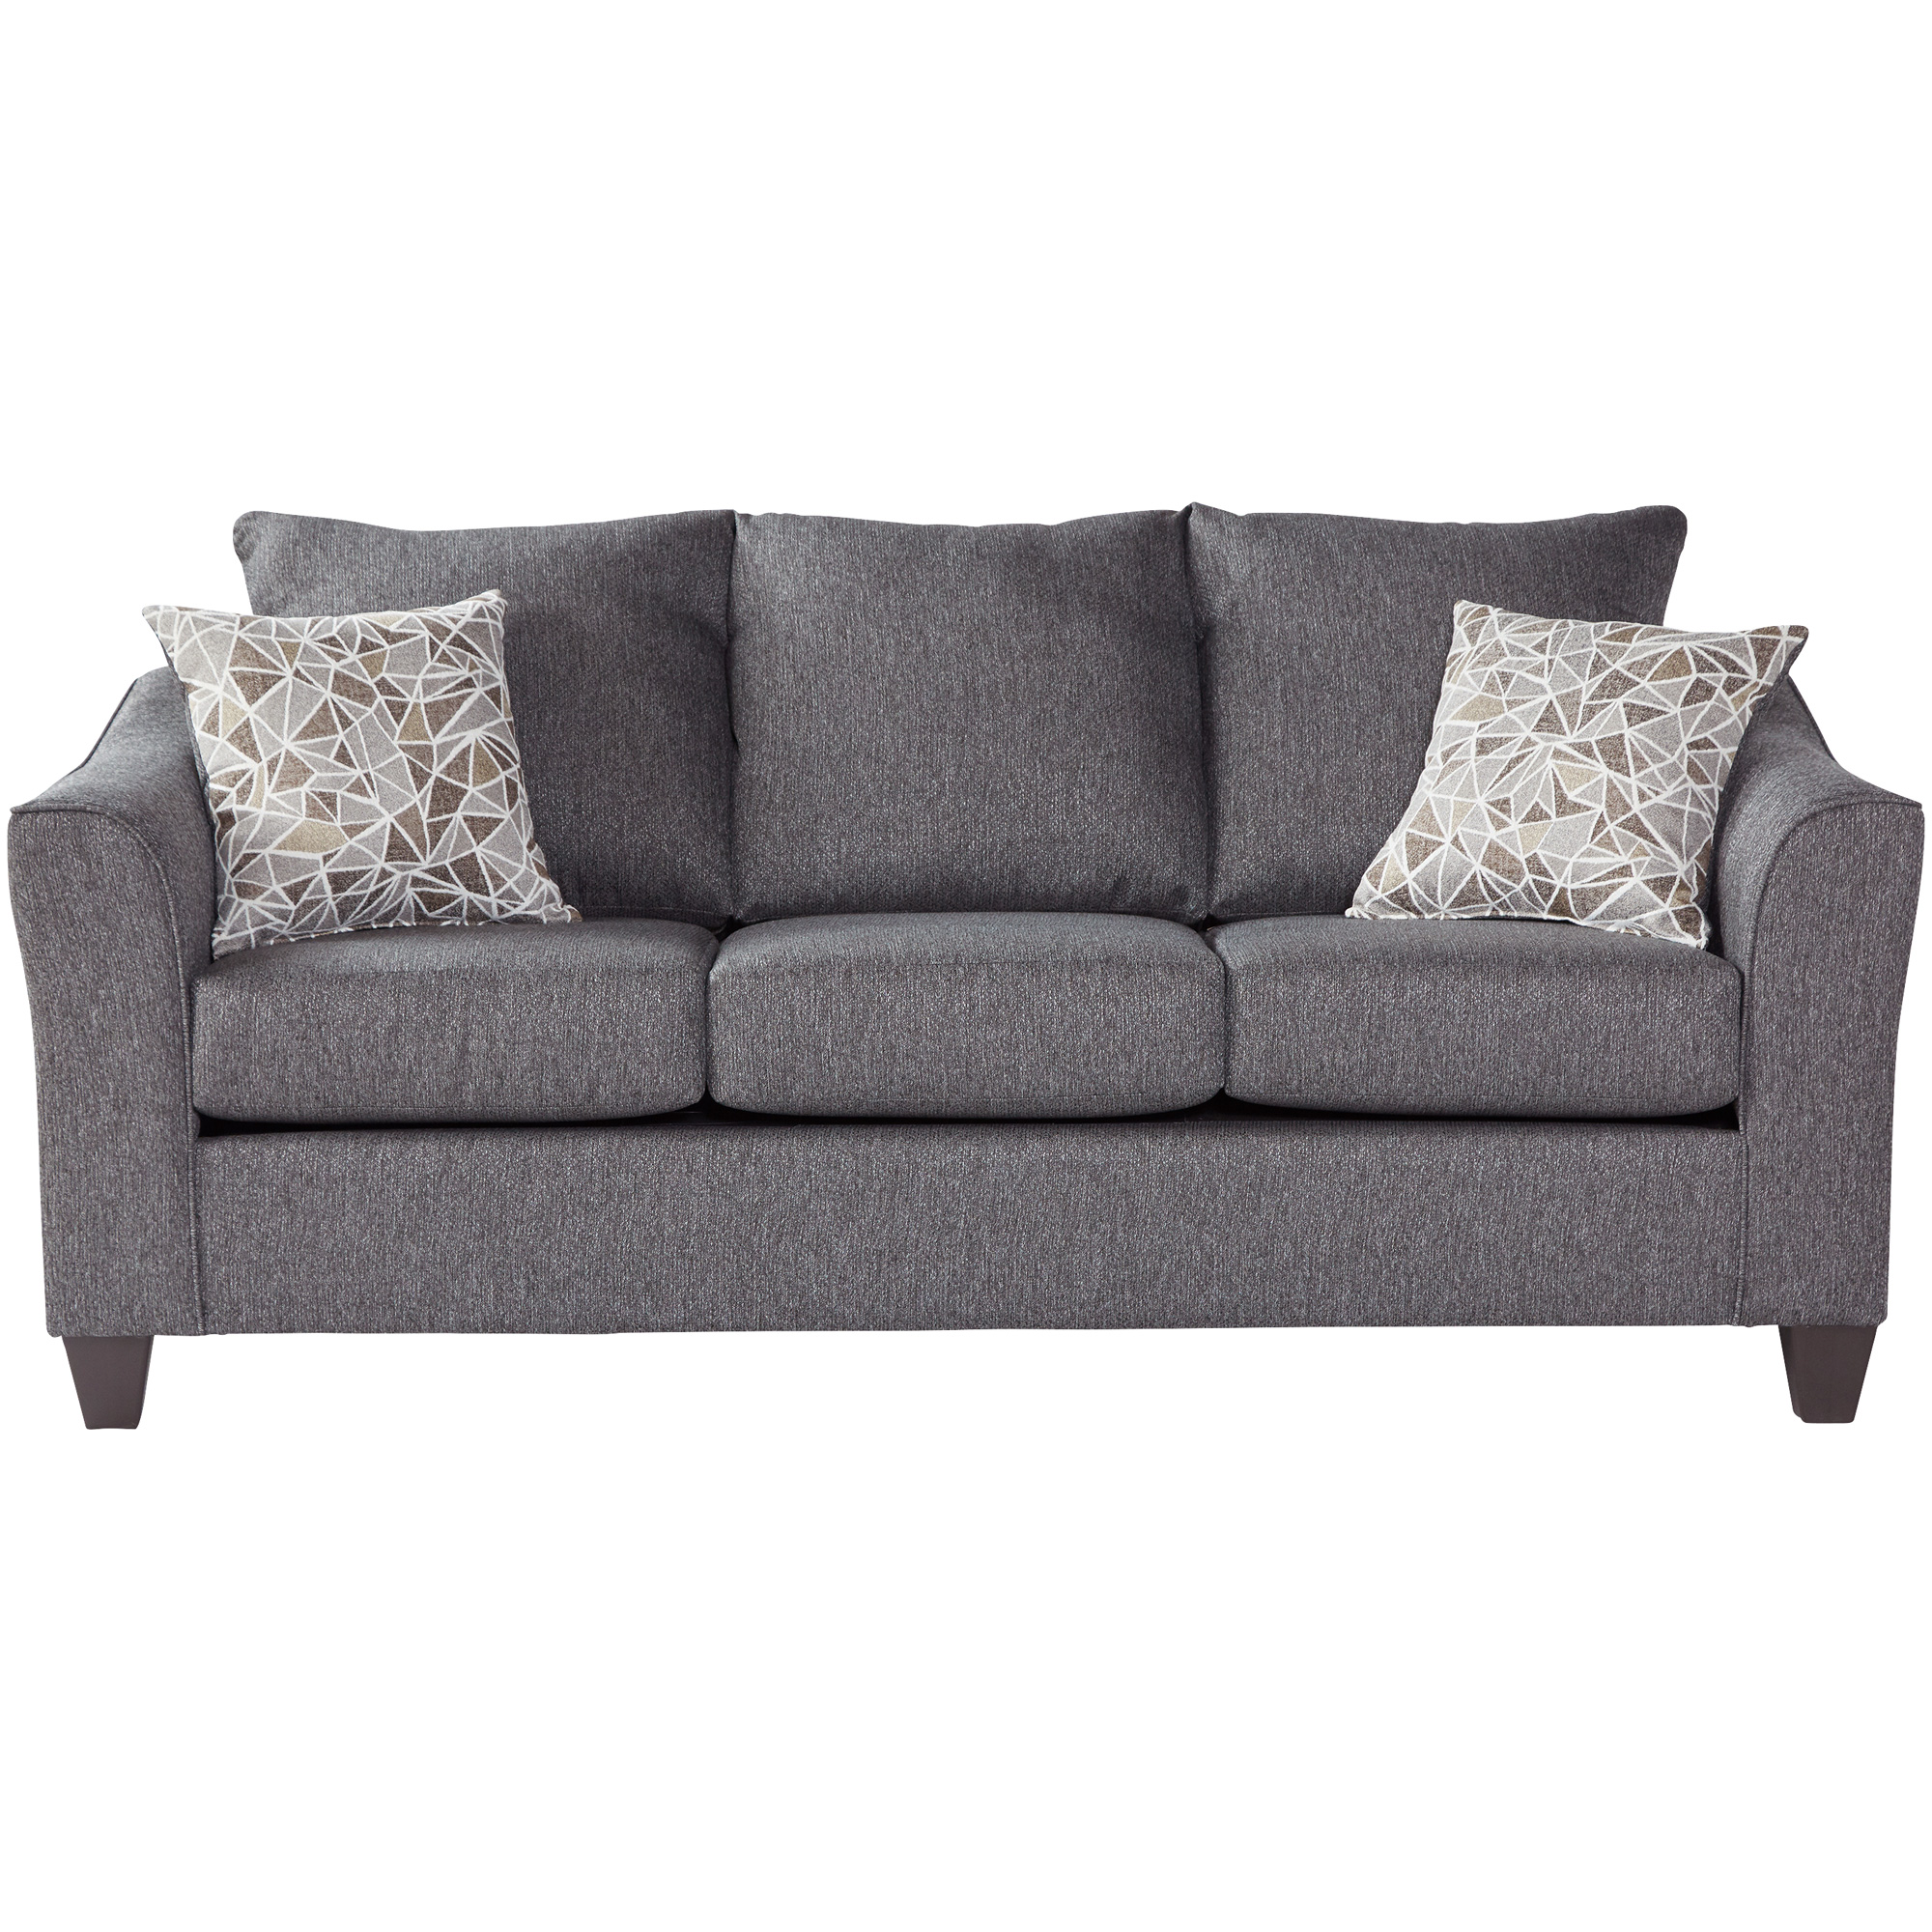 Serta Upholstery By Hughes Furniture | Bolt Granite Sofa